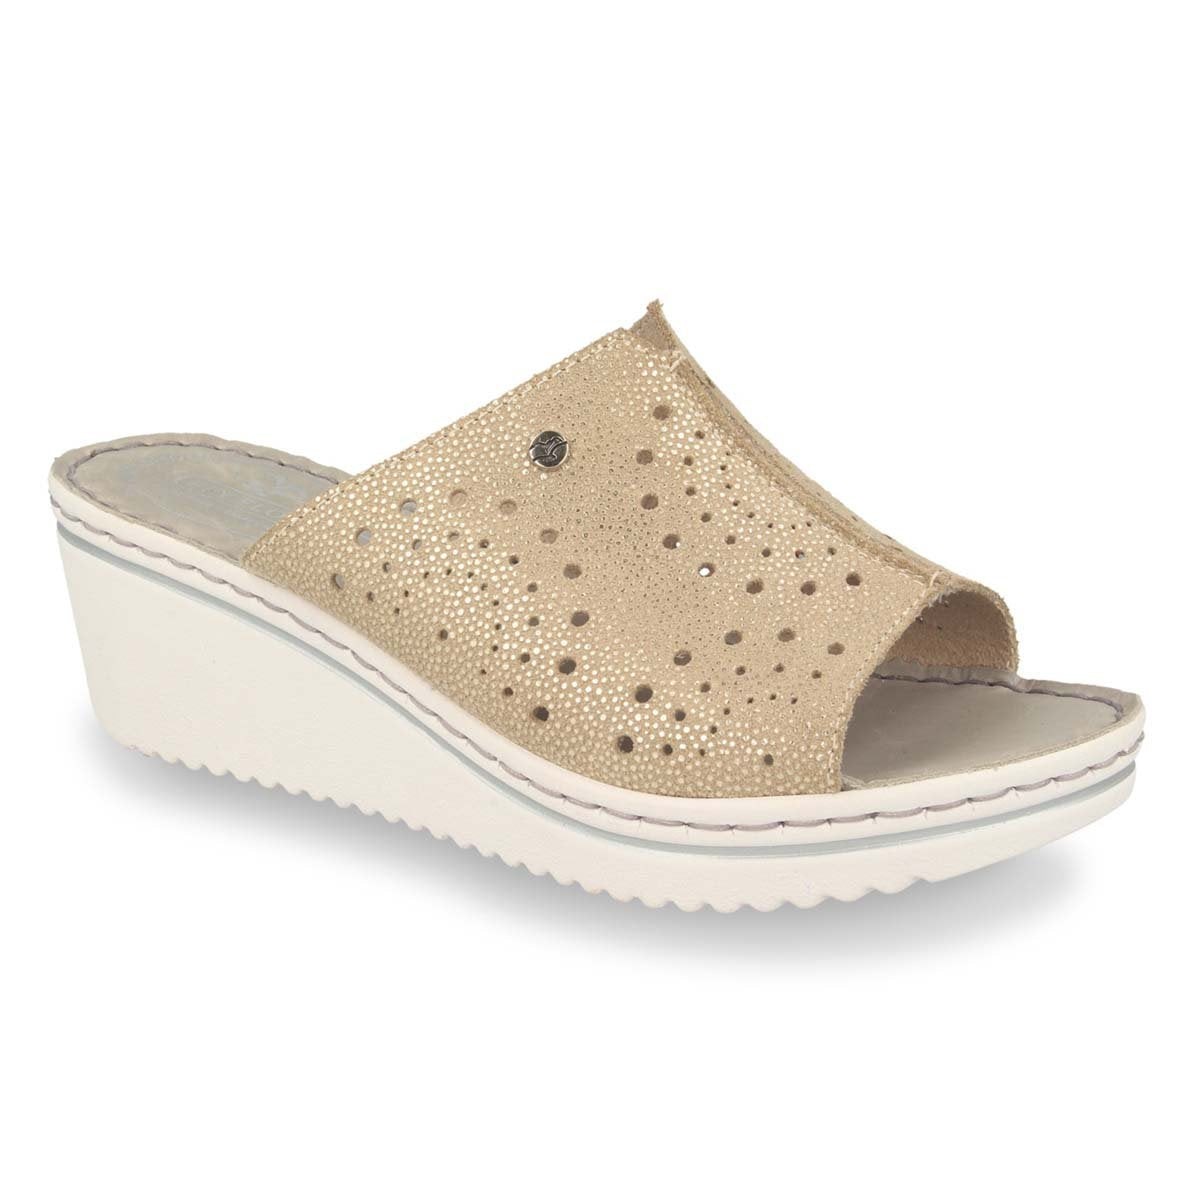 Photo of the Leather Woman Slipper Beige (41d41og)